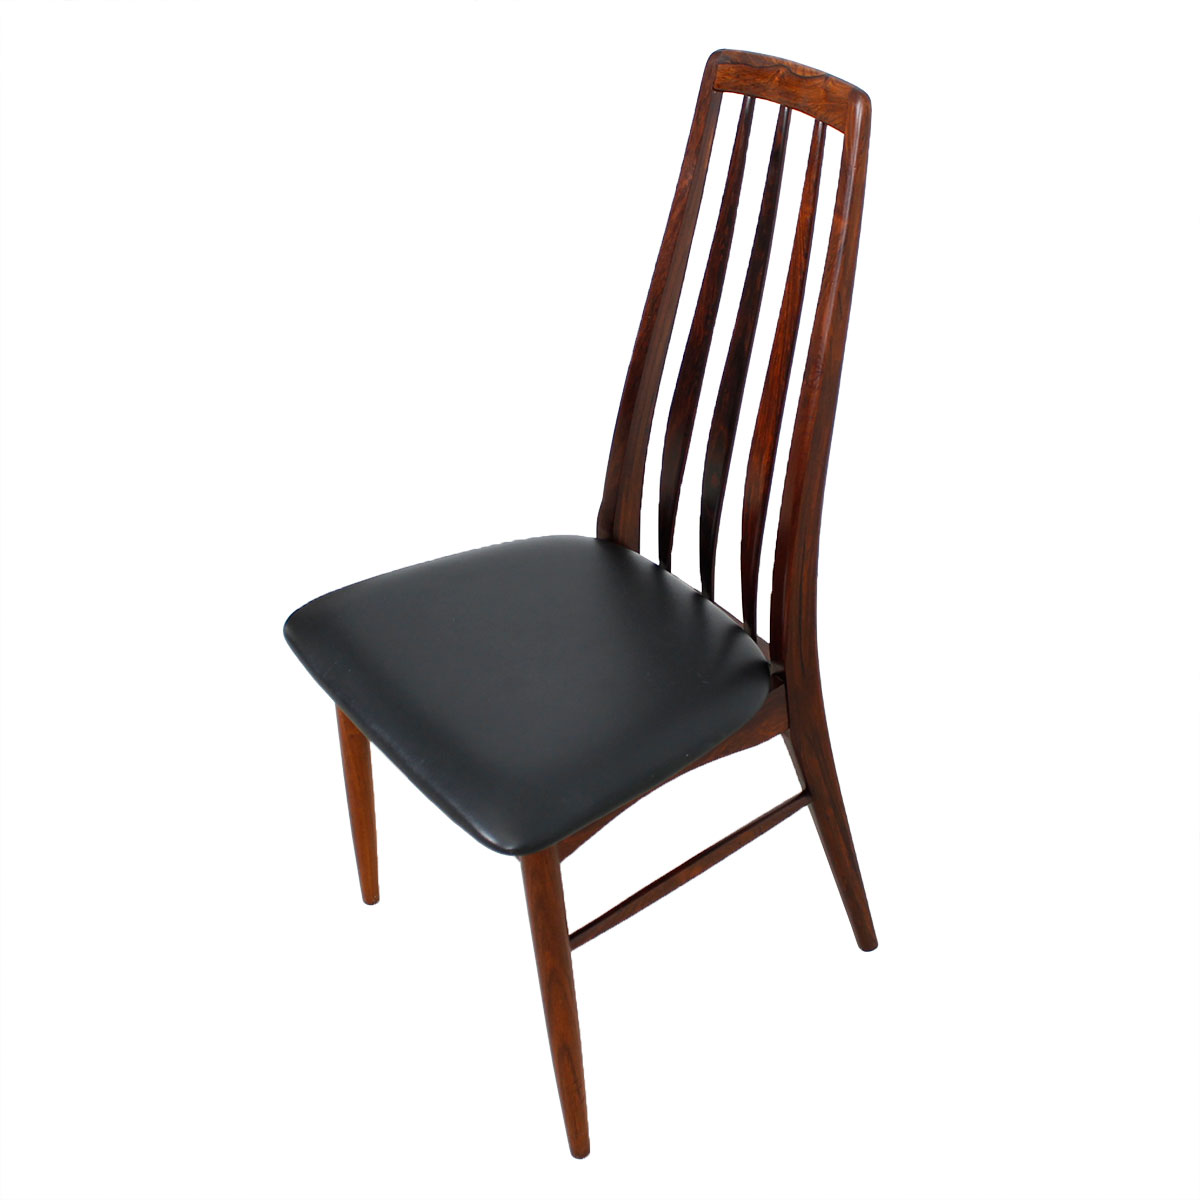 Stunning Set of 10 Koefoed Hornslet Danish Rosewood Dining Chairs